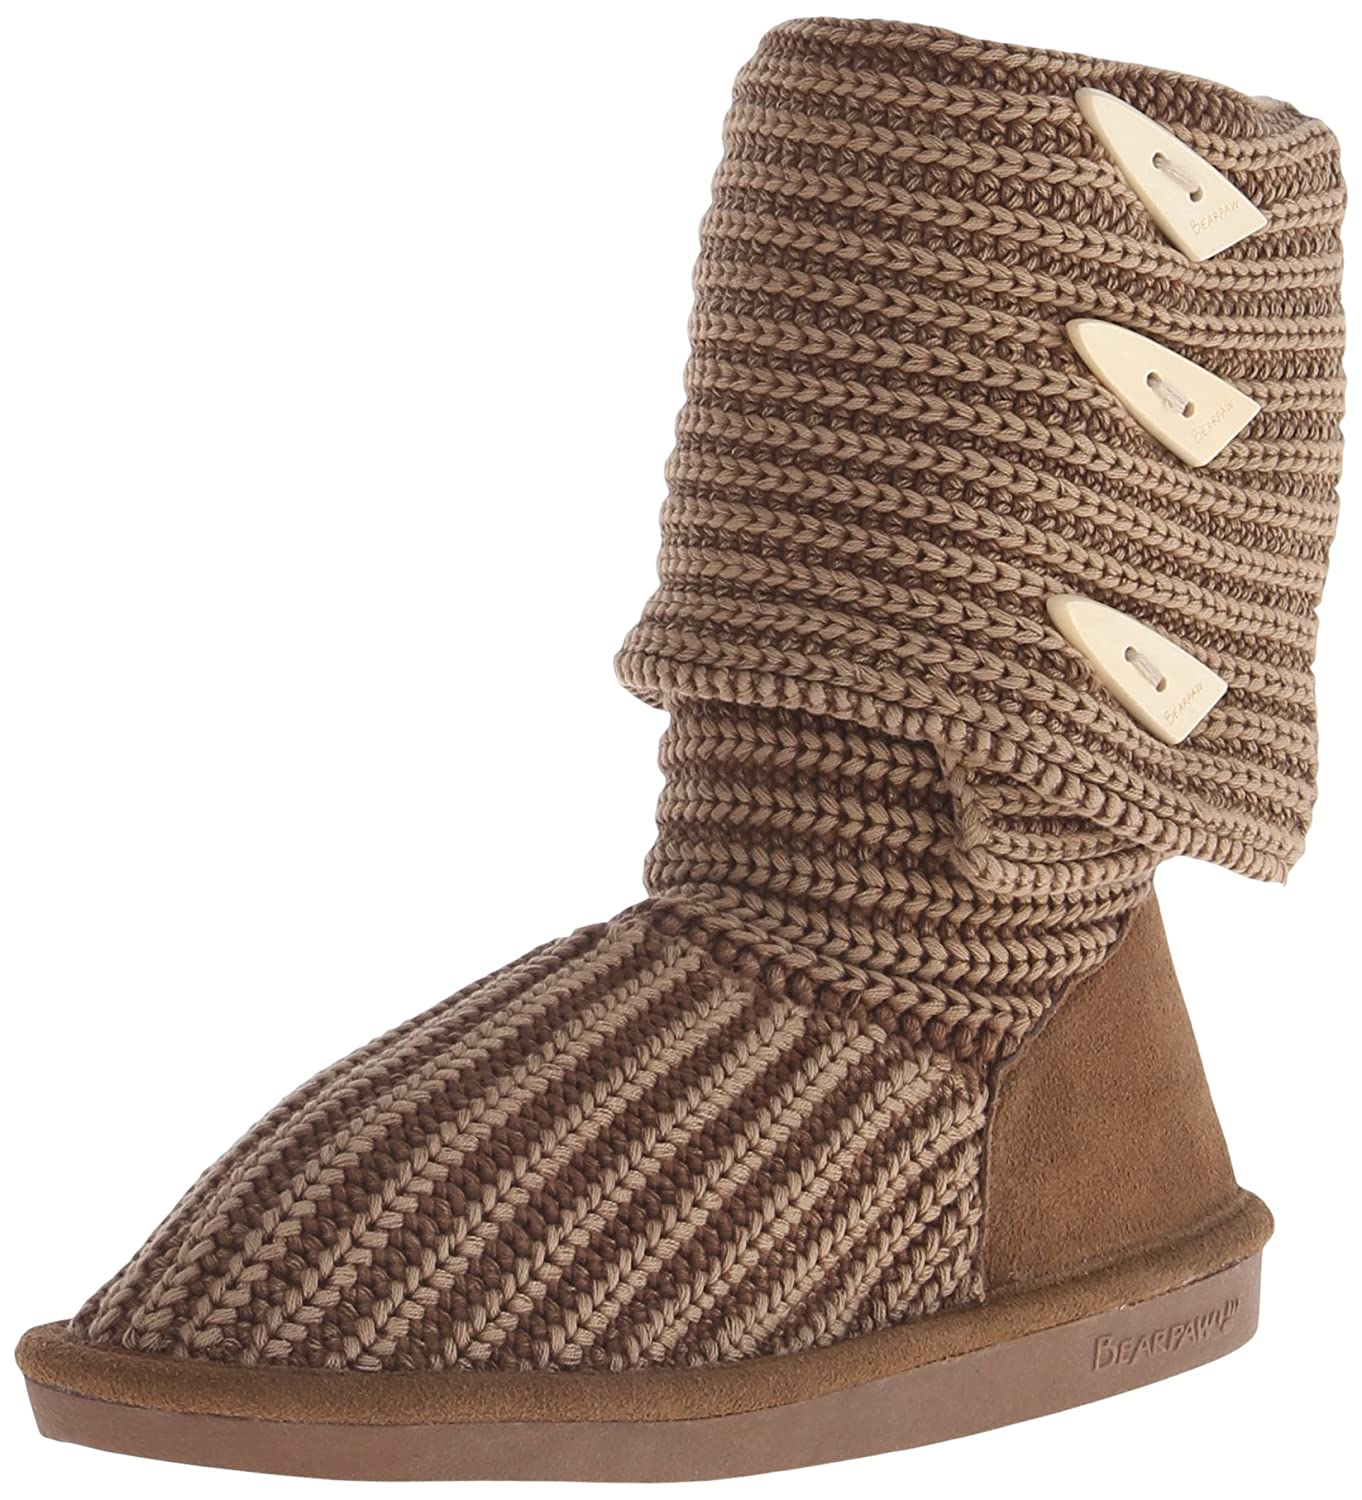 BEARPAW Women's Knit Tall B00592TRIU 10 B(M) US|Hickory